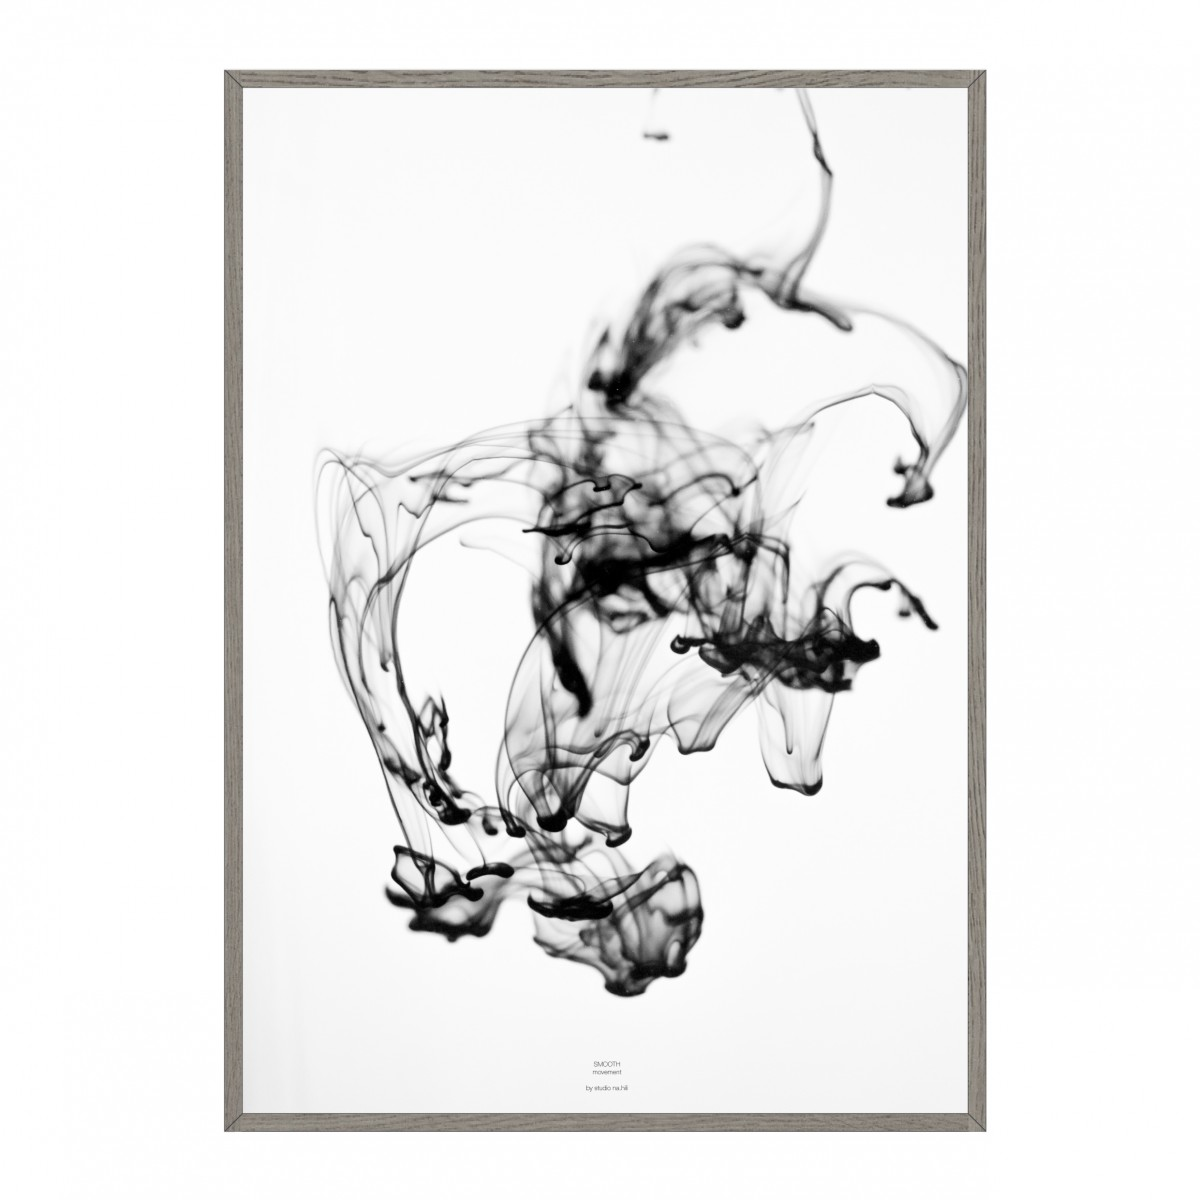 SMOOTH movement - black Artprint A3 Poster, 50x70, A1 Poster